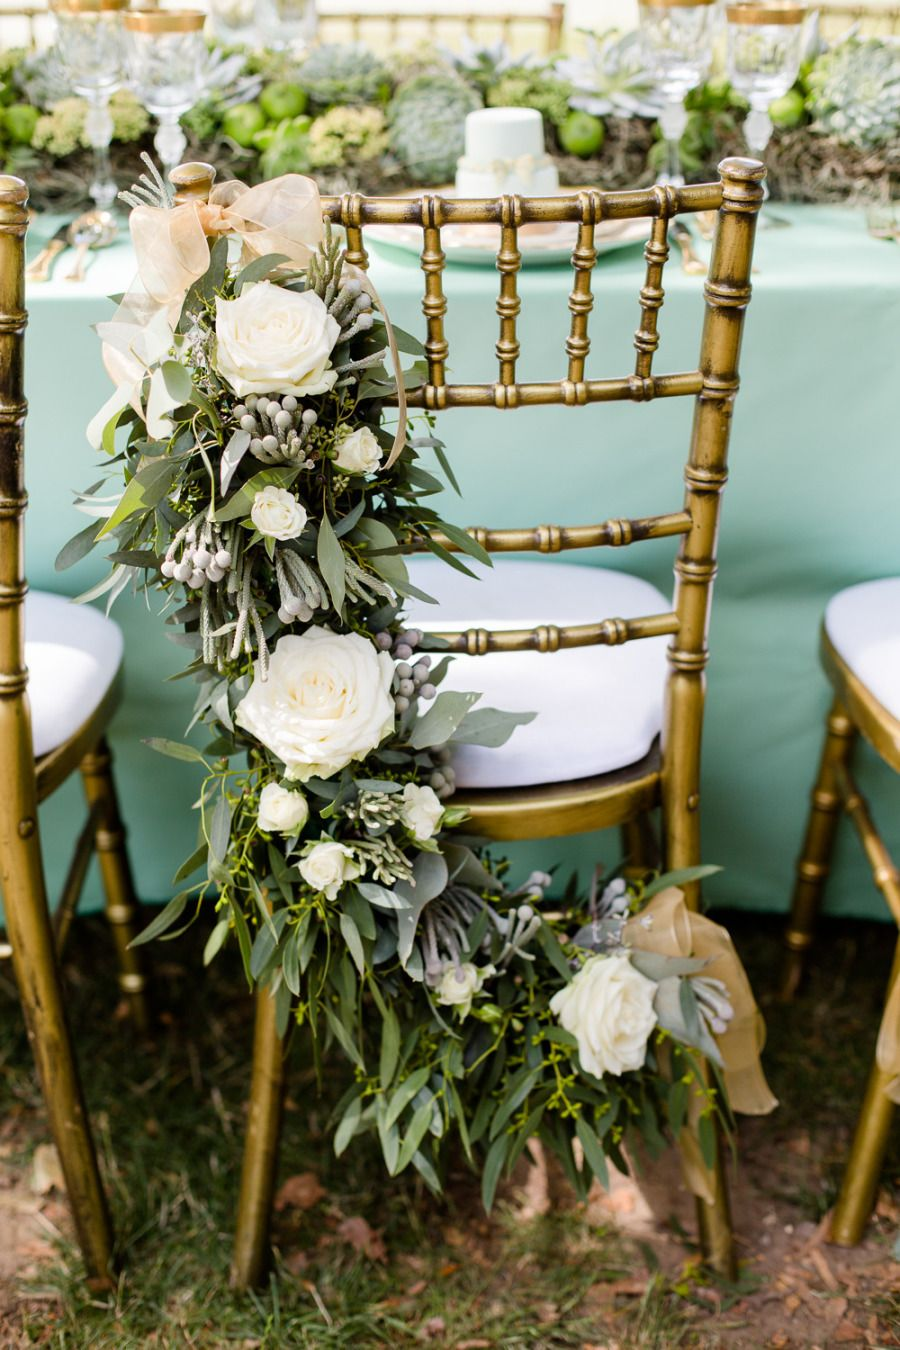 Pin By Alena Coulas On Its All In The Details Wedding